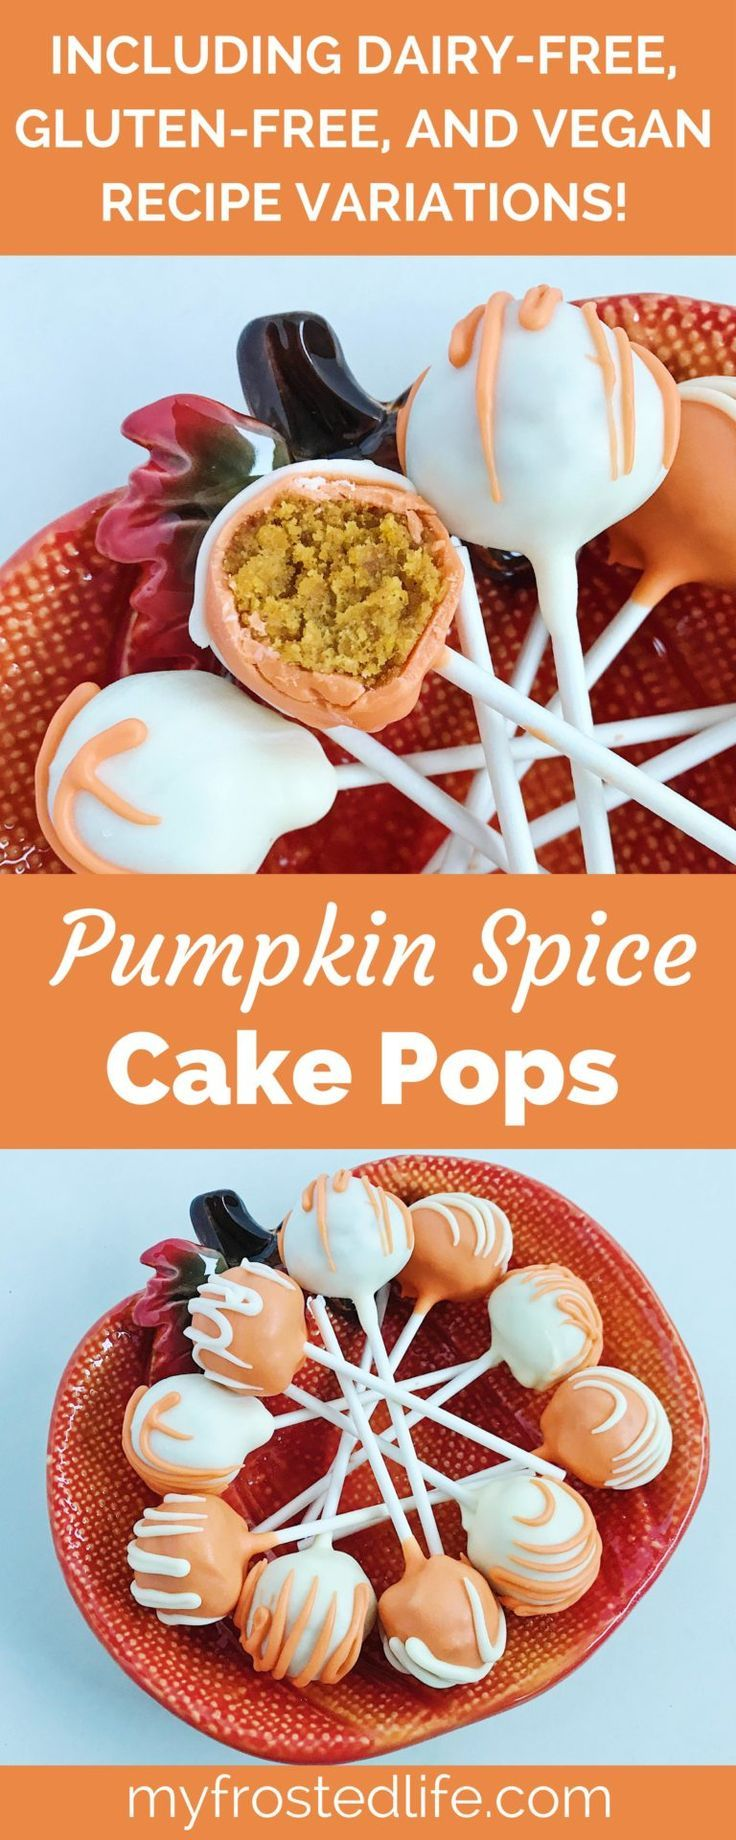 It is finally pumpkin spice season! These Pumpkin Spice Cake Pops are a recipe that feature a moist pumpkin cake bound with cream cheese frosting covered in white chocolate. This recipe includes dairy free, gluten free, and vegan recipe variations so everyone can enjoy these delicious treats!